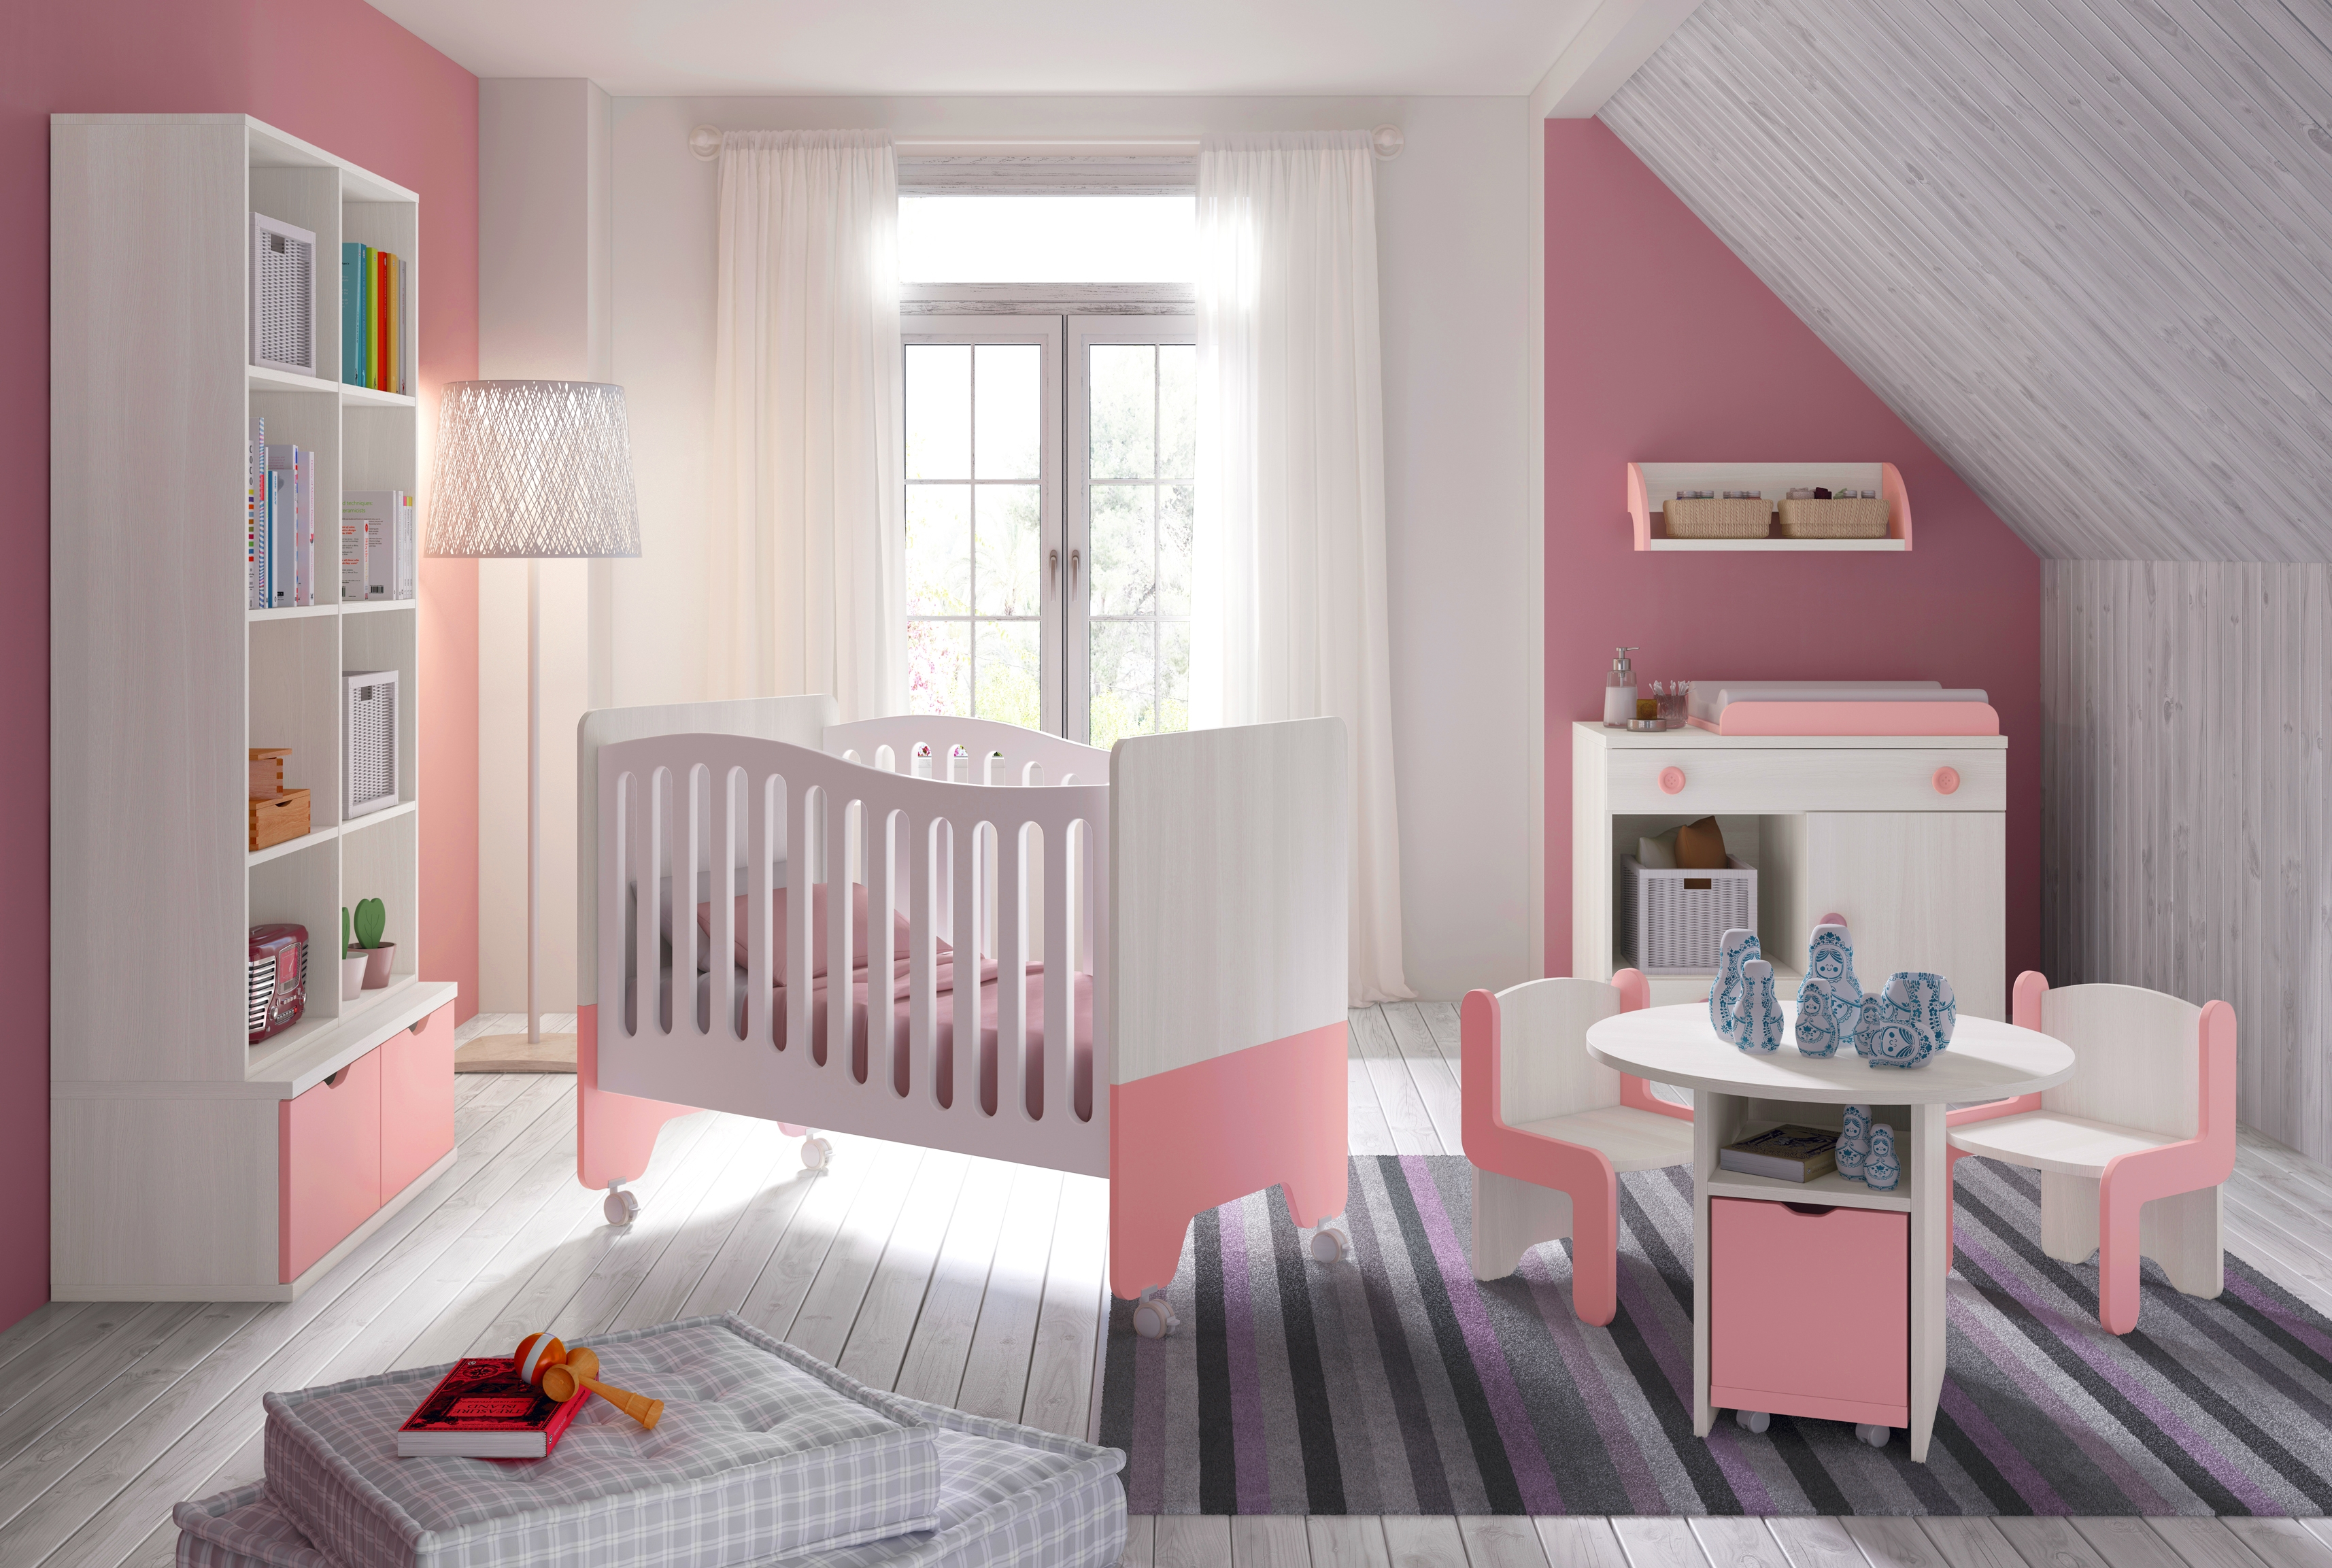 chambre b b fille avec lit bicouleur blanc et rose glicerio so nuit. Black Bedroom Furniture Sets. Home Design Ideas